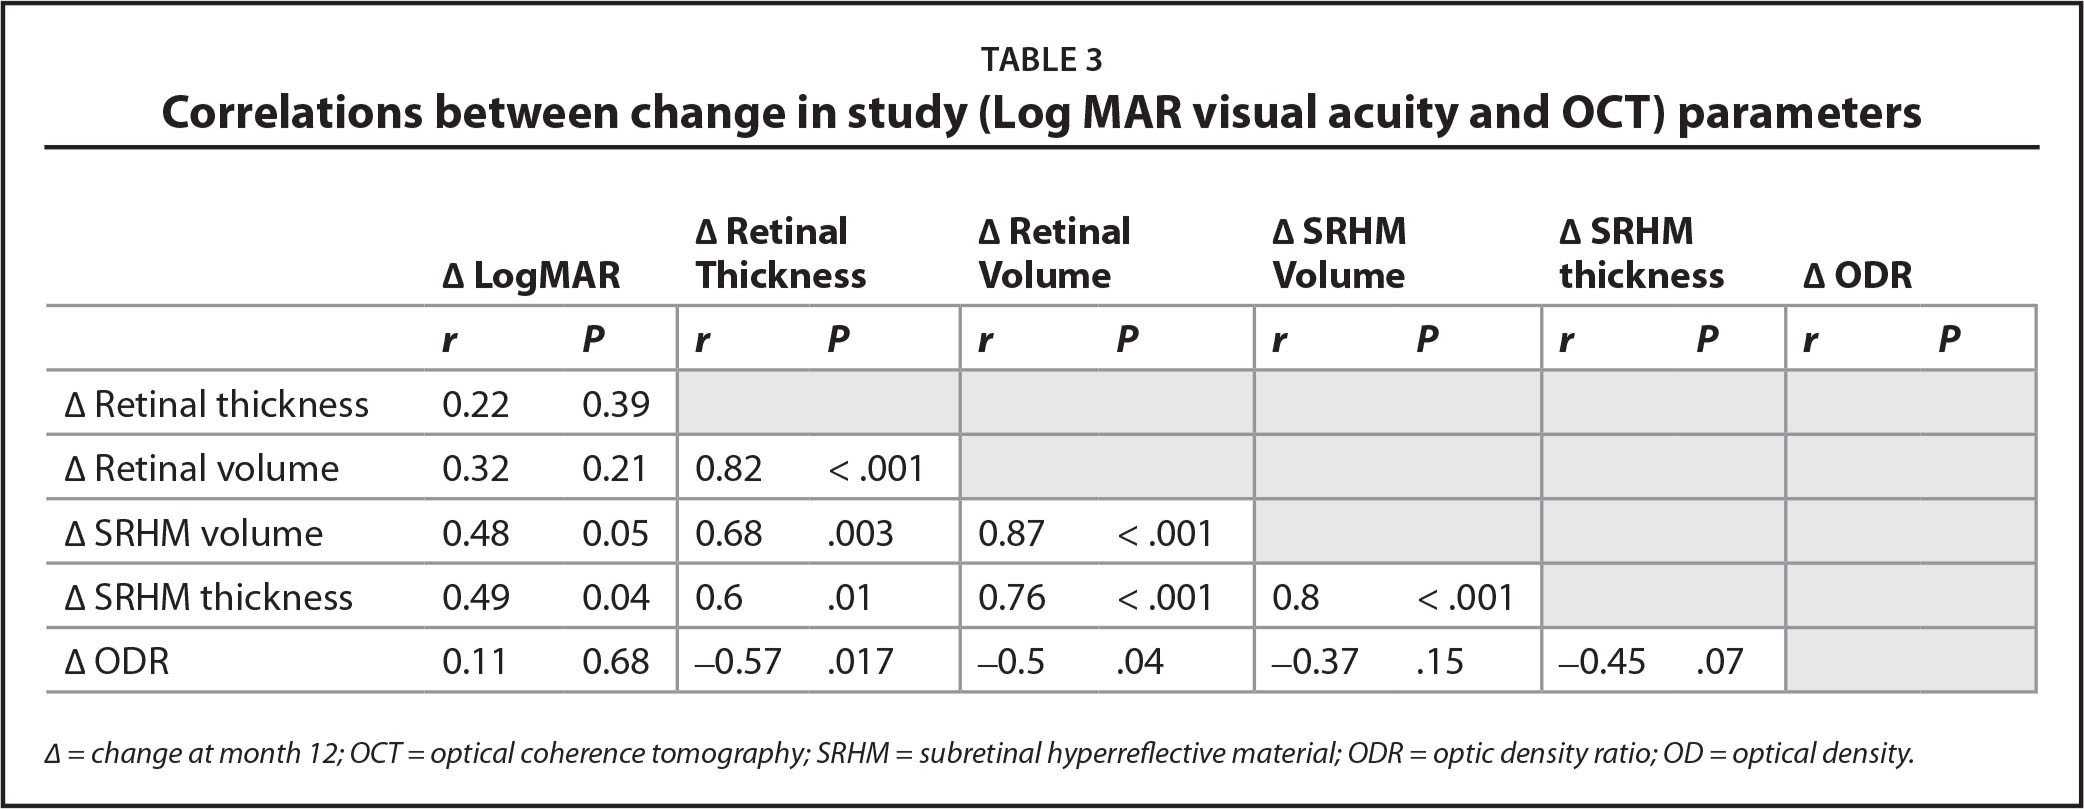 Correlations between change in study (Log MAR visual acuity and OCT) parameters